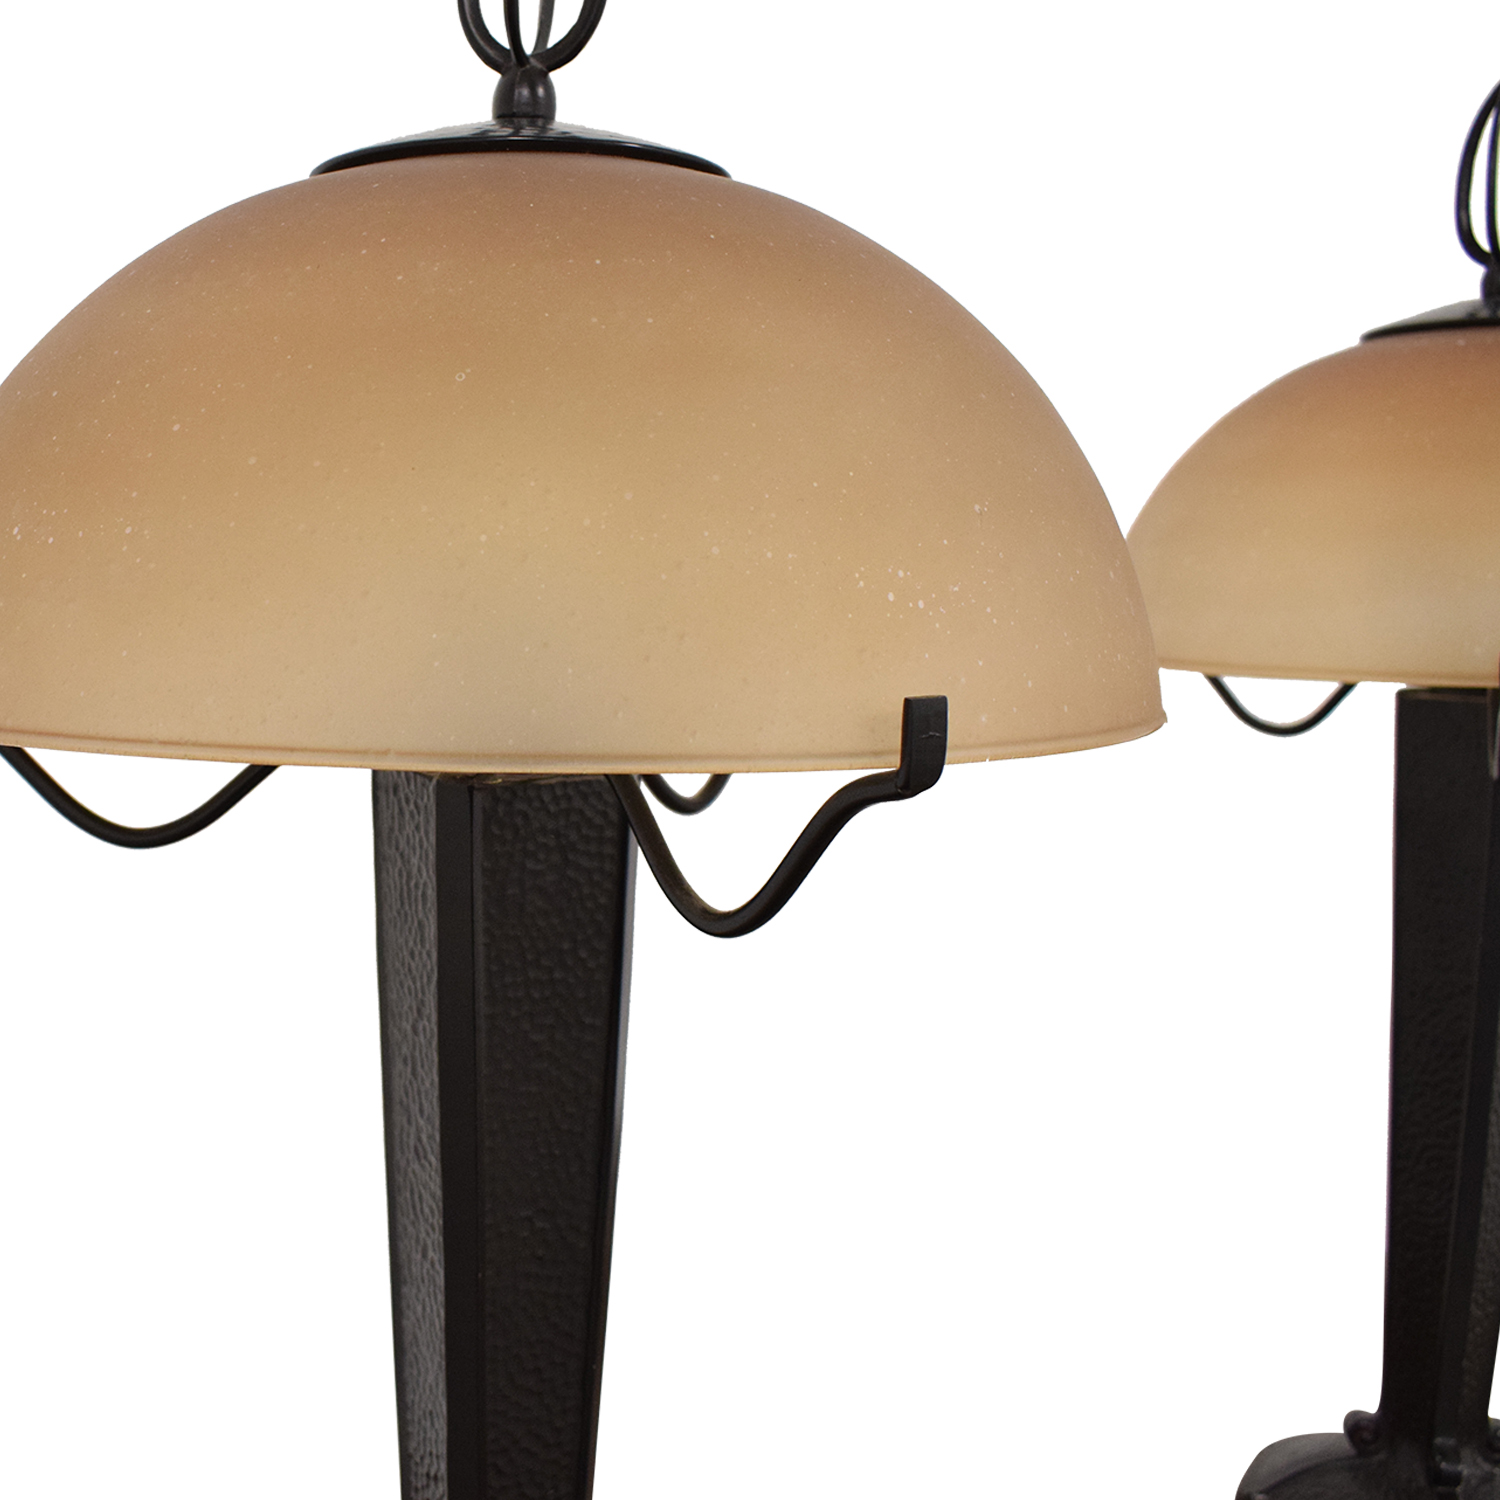 Restoration Hardware Restoration Hardware Craftsman Style Table Lamps ma